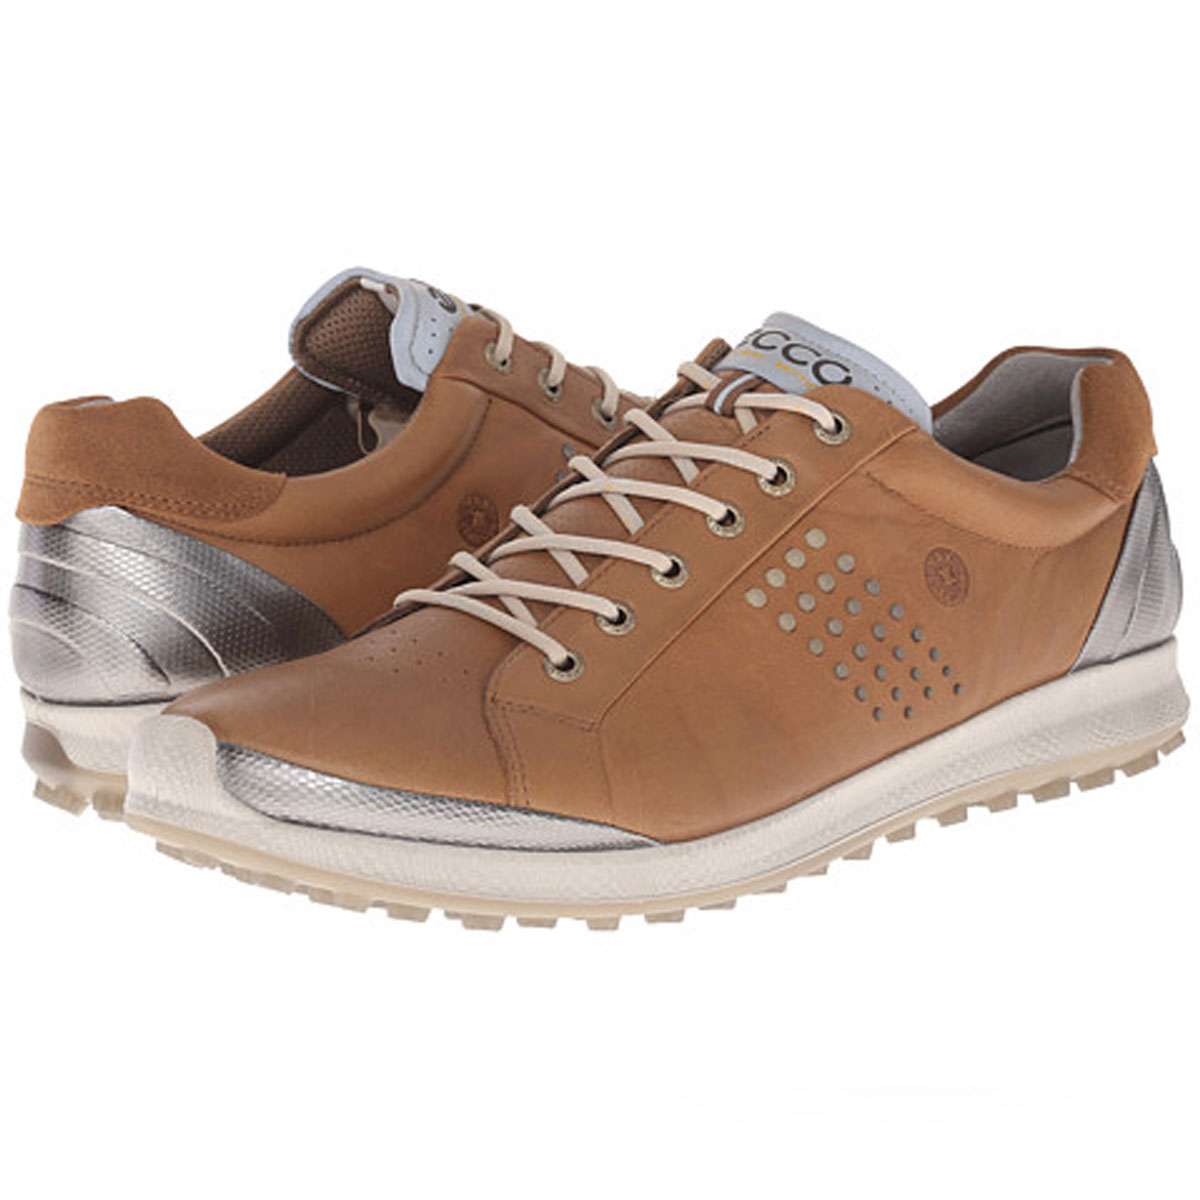 Ecco Biom Hybrid Golf Shoes Uk